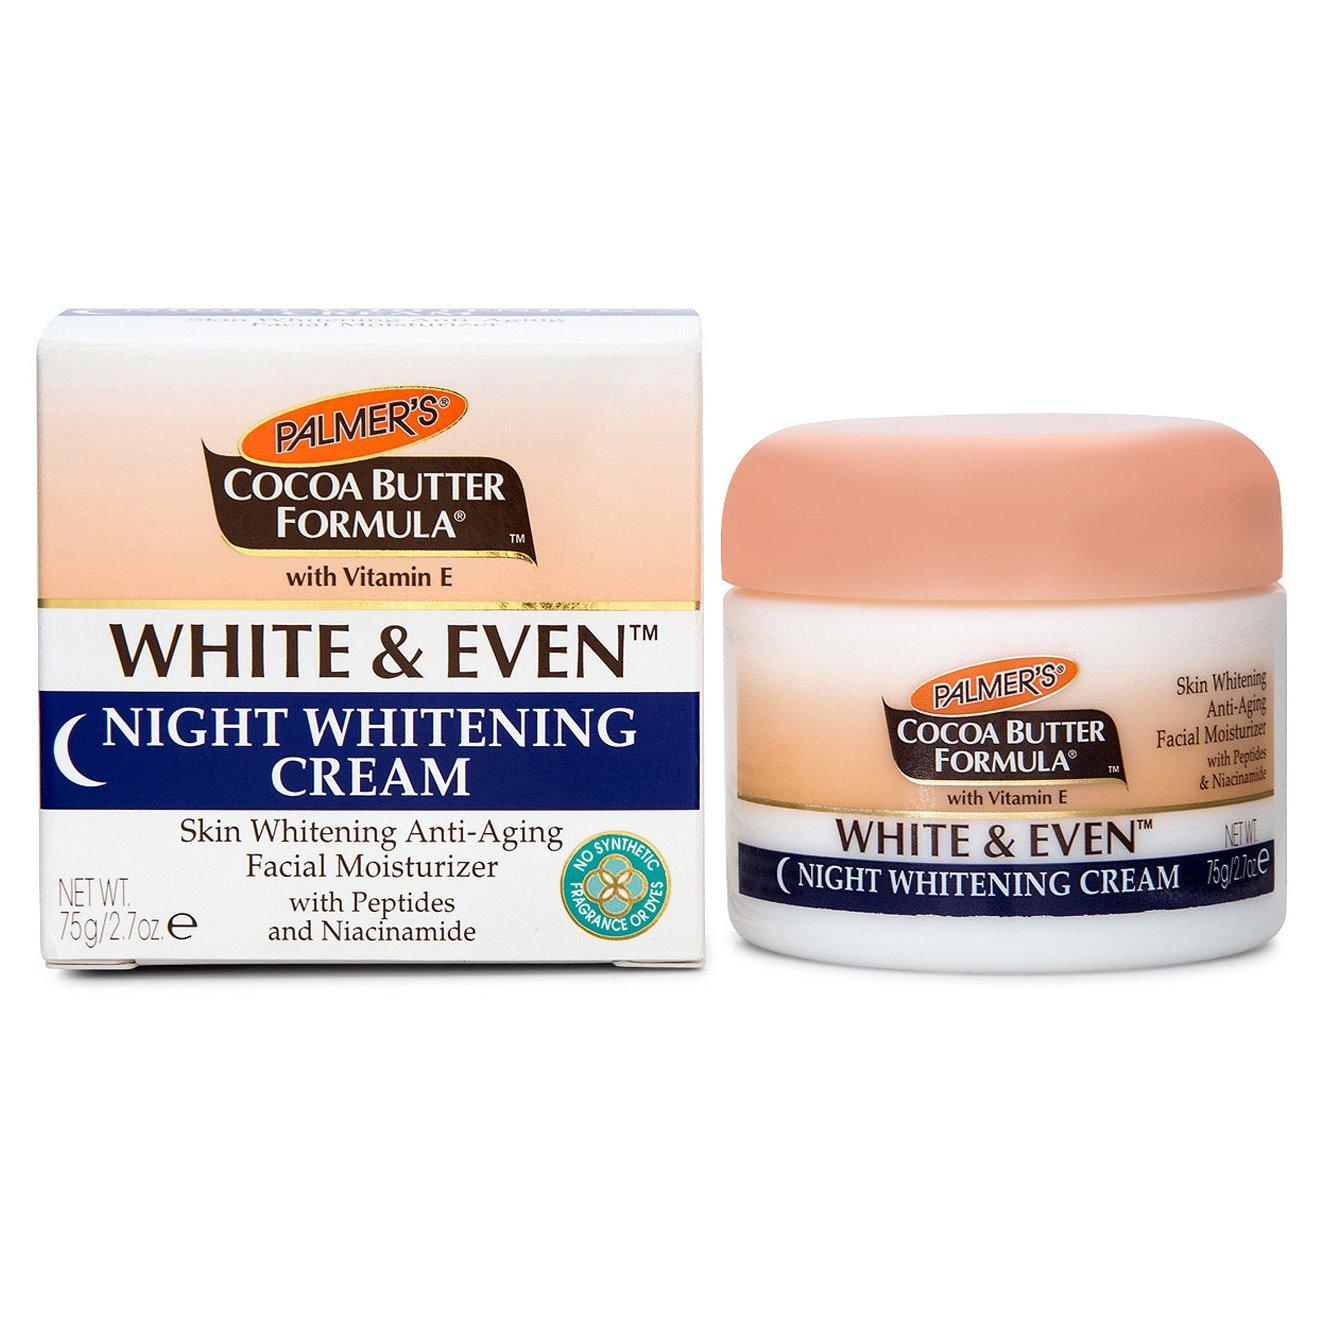 How Do I Get Palmer S Cocoa Butter White Even Night Whitening Cream 75G Buy 1 Get 1 Free